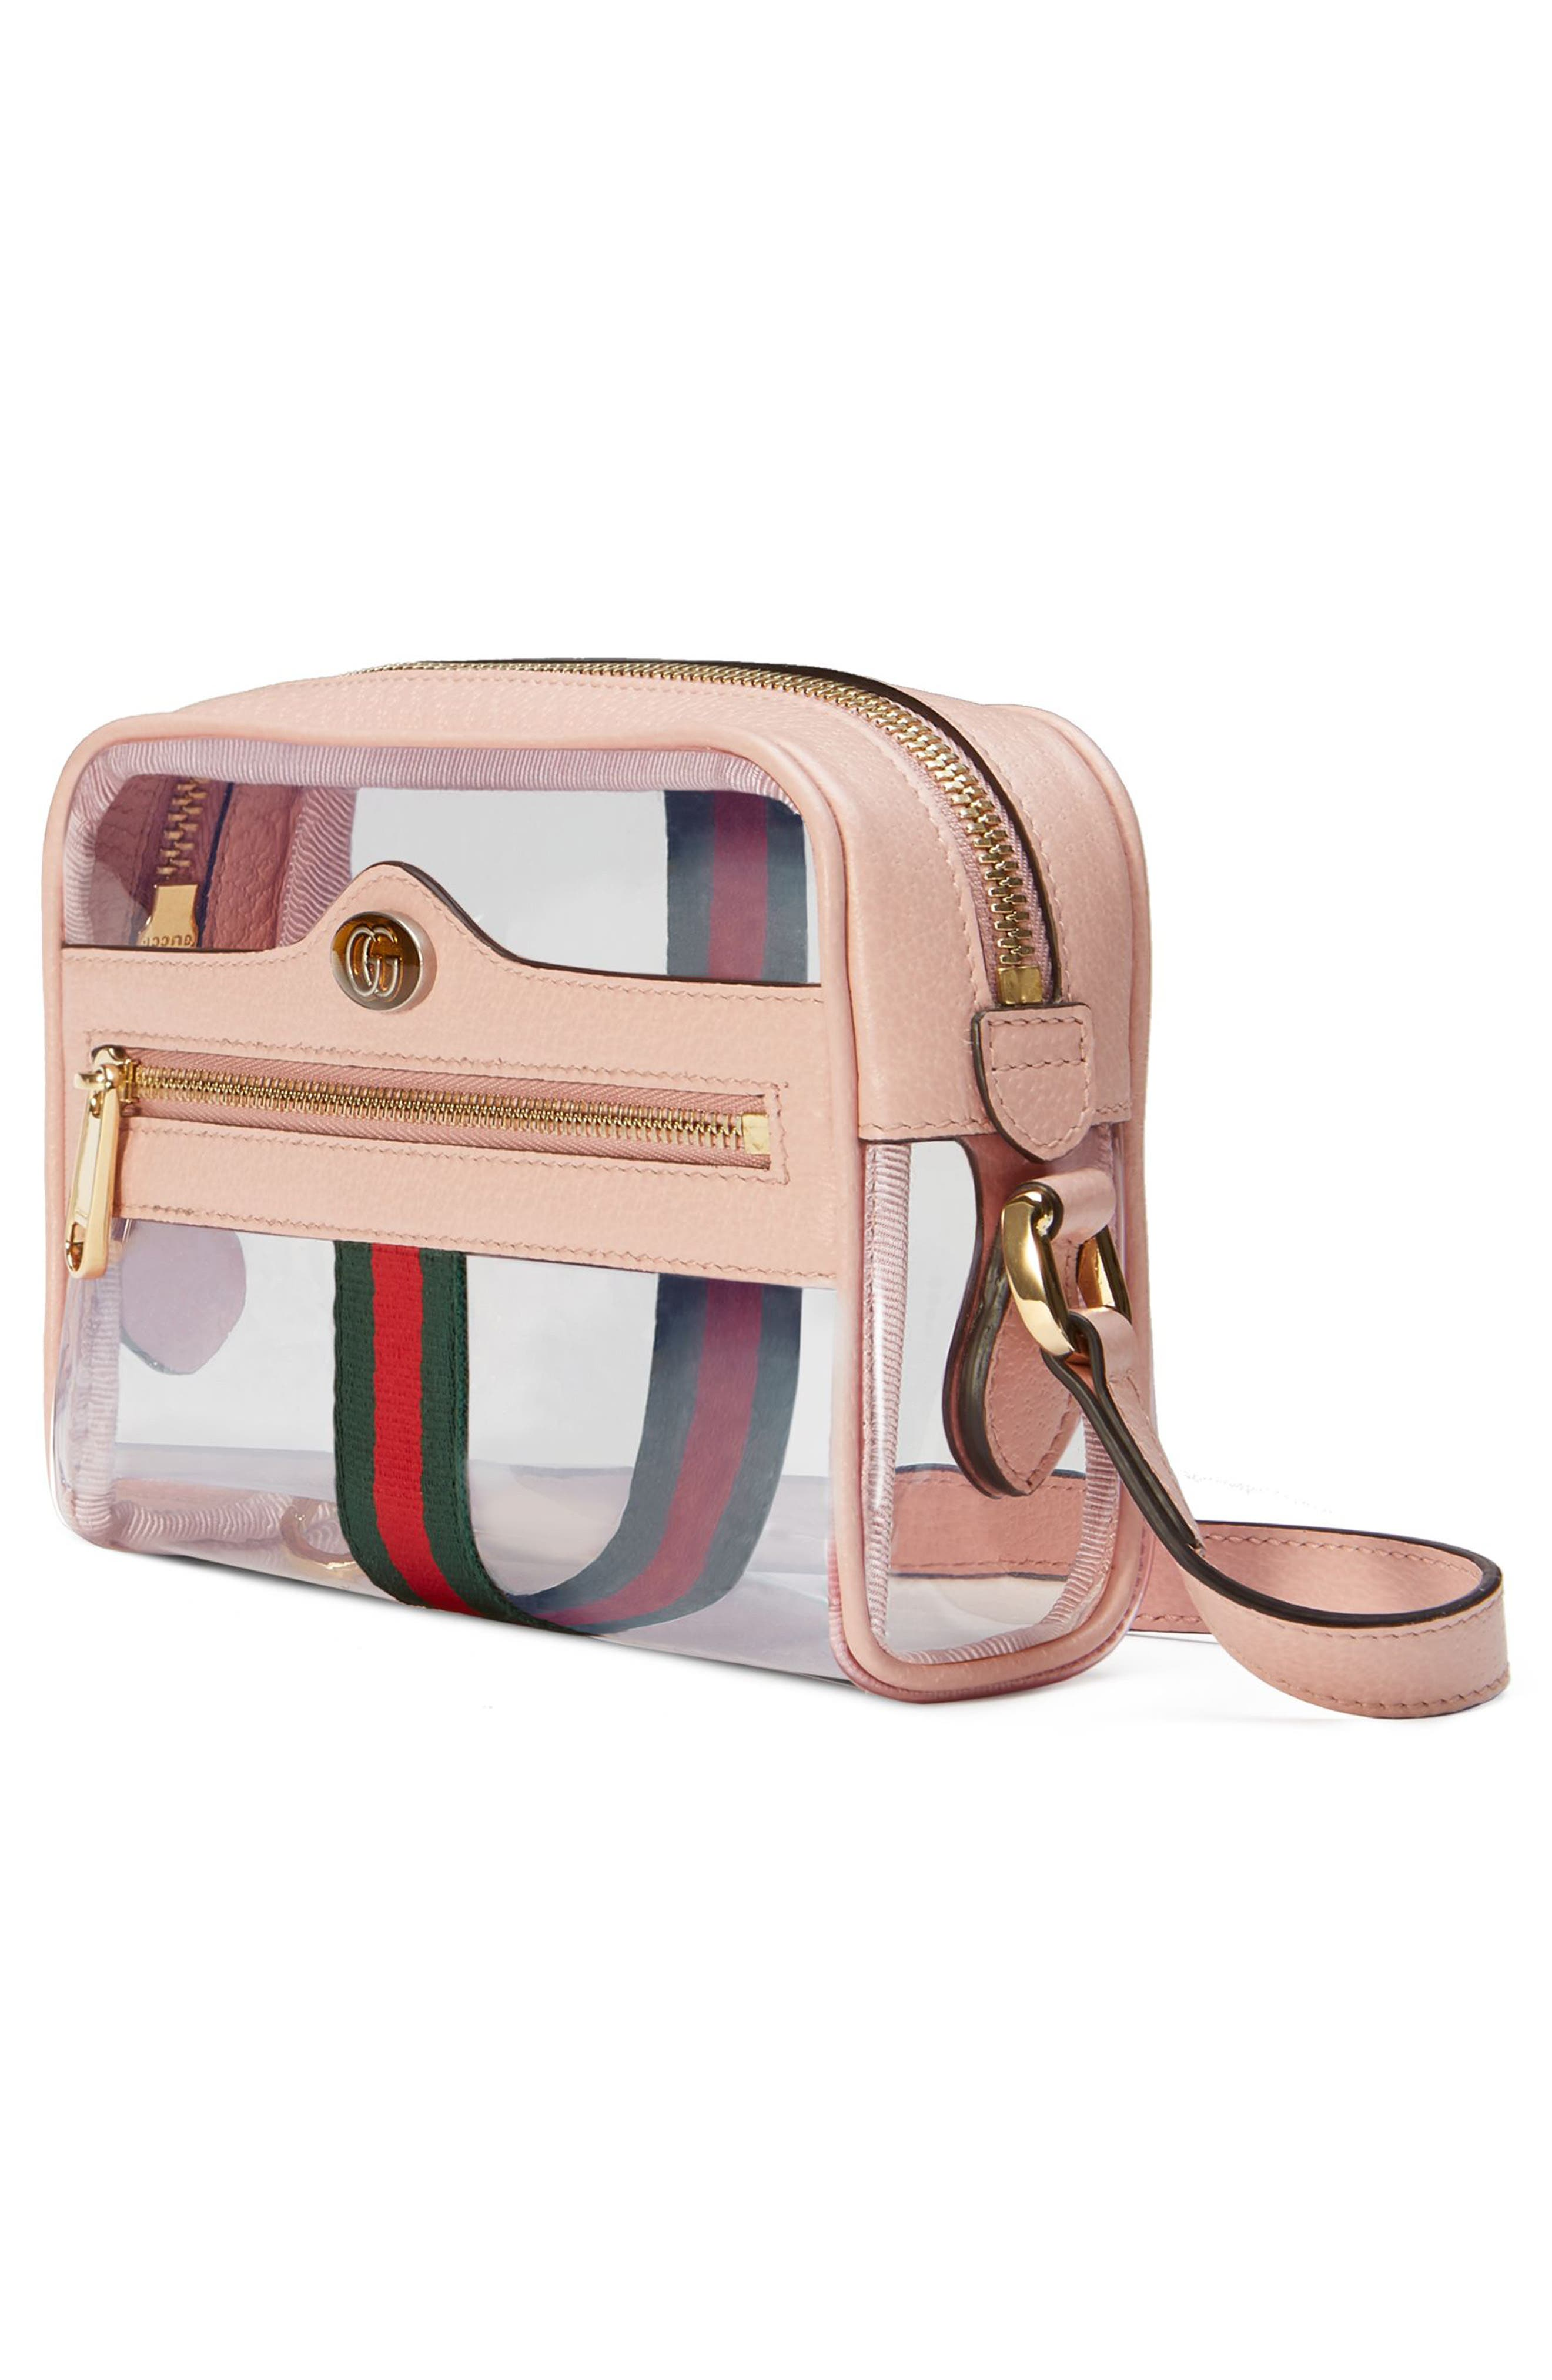 Mini Ophidia Transparent Convertible Bag,                             Alternate thumbnail 4, color,                             PINK/ PERFECT PINK/ VERT RED